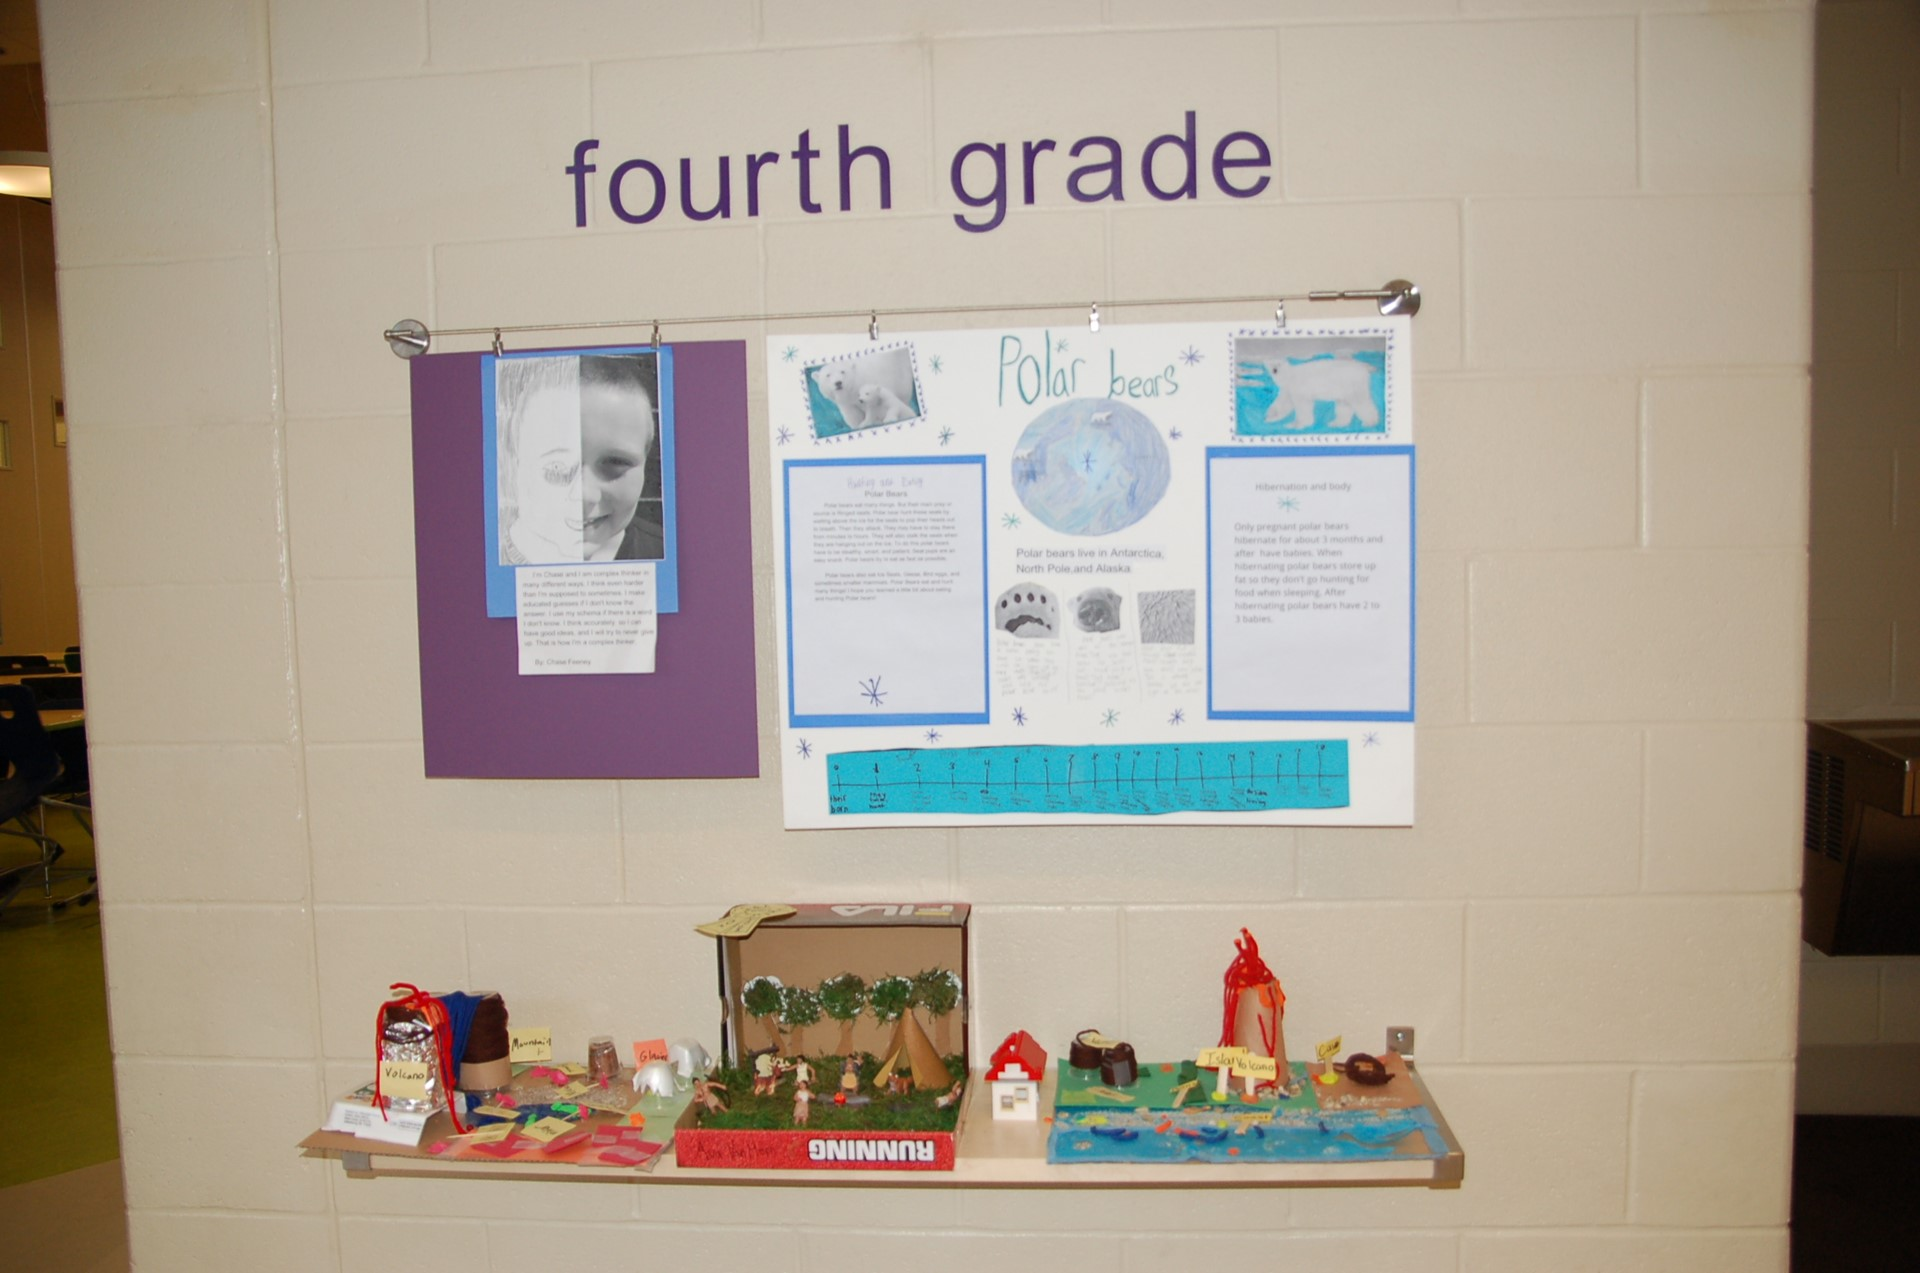 Principal's Gallery showing fourth grade area.